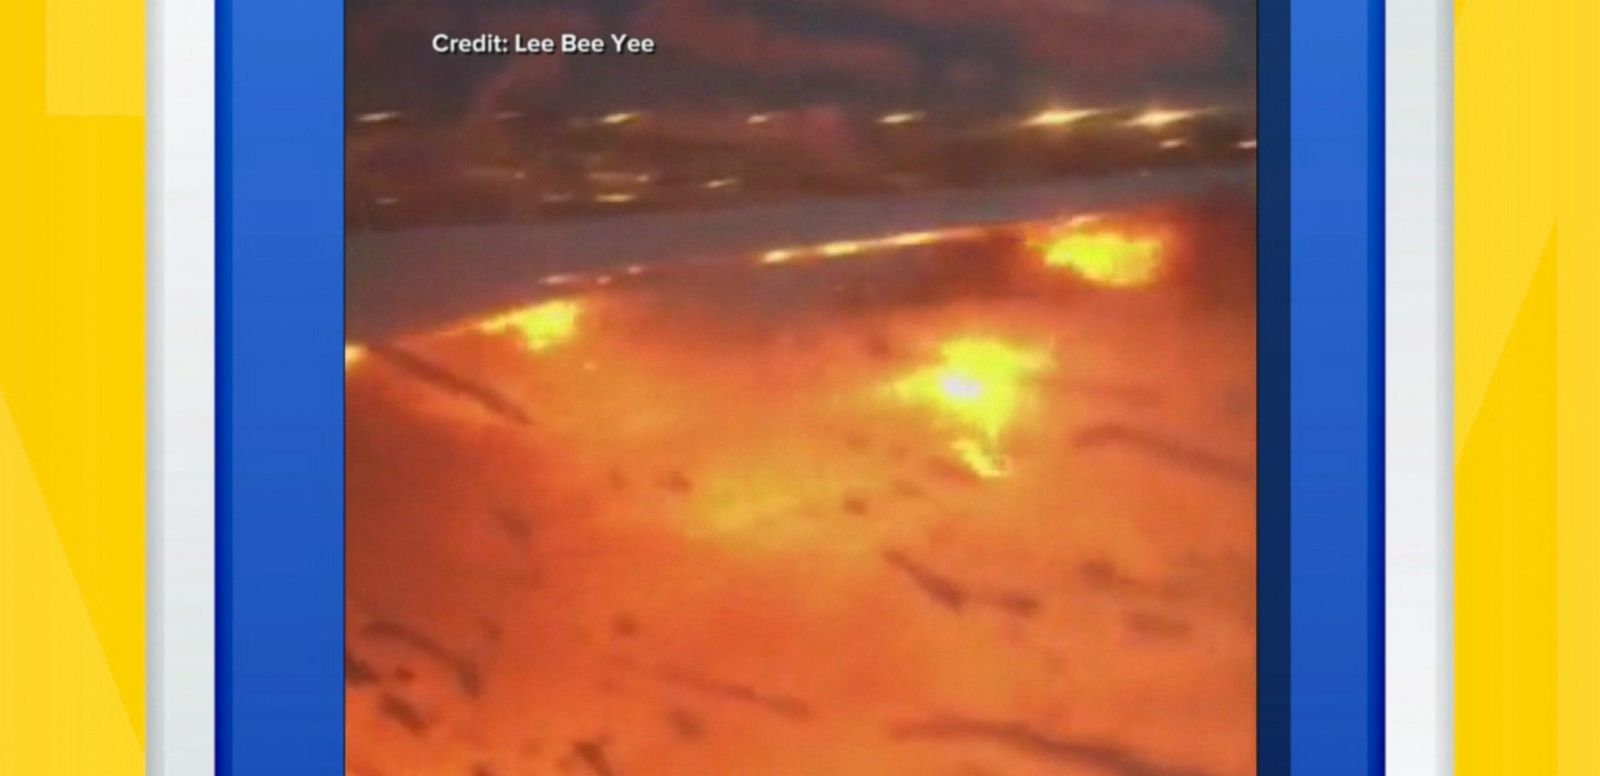 VIDEO: A Singapore Airlines plane bound for Milan caught fire while making an emergency landing at Singapore's Changi Airport early Monday morning.